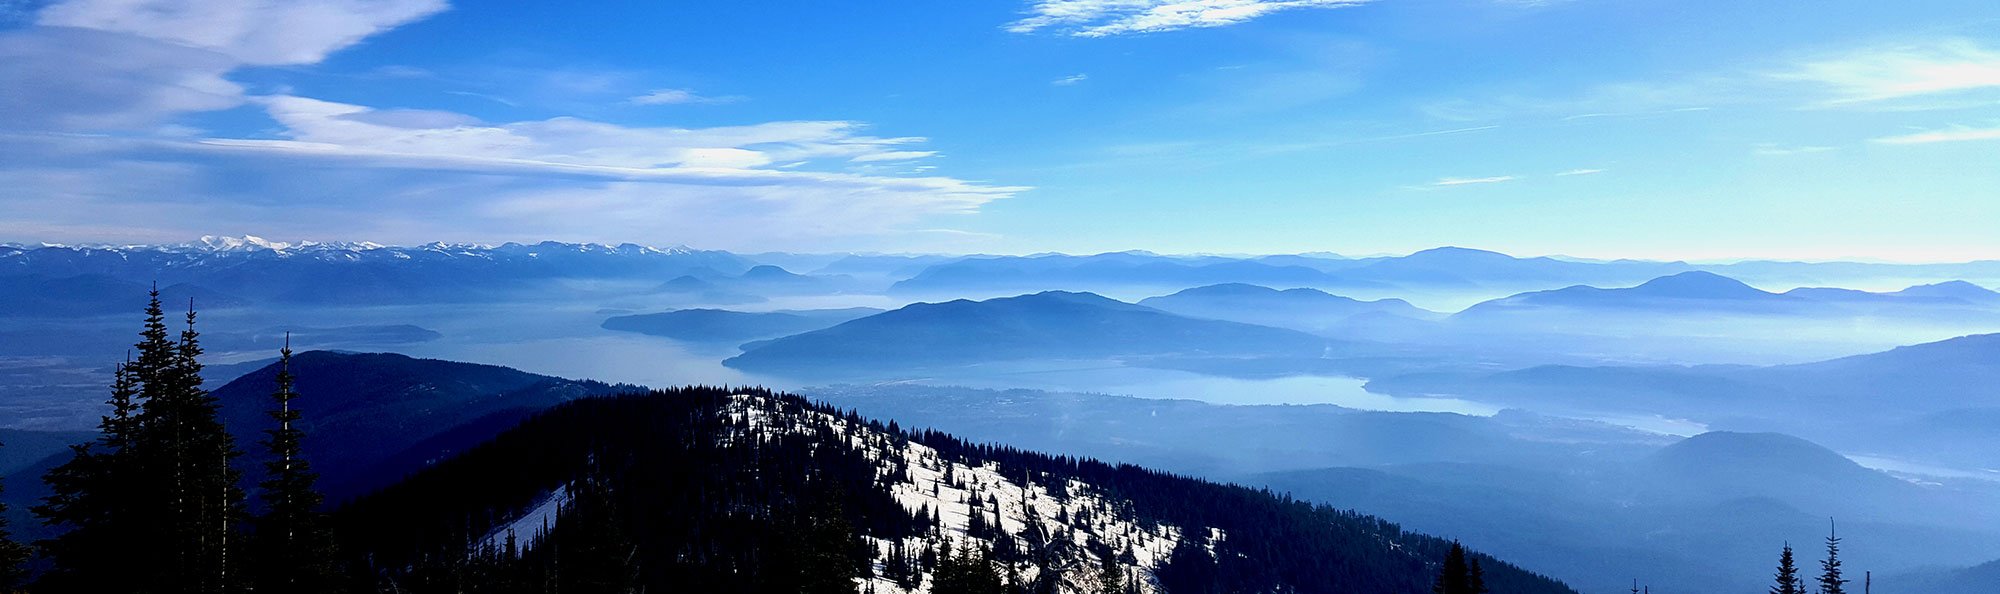 View of Sandpoint Idaho and Lake Pend Oreille